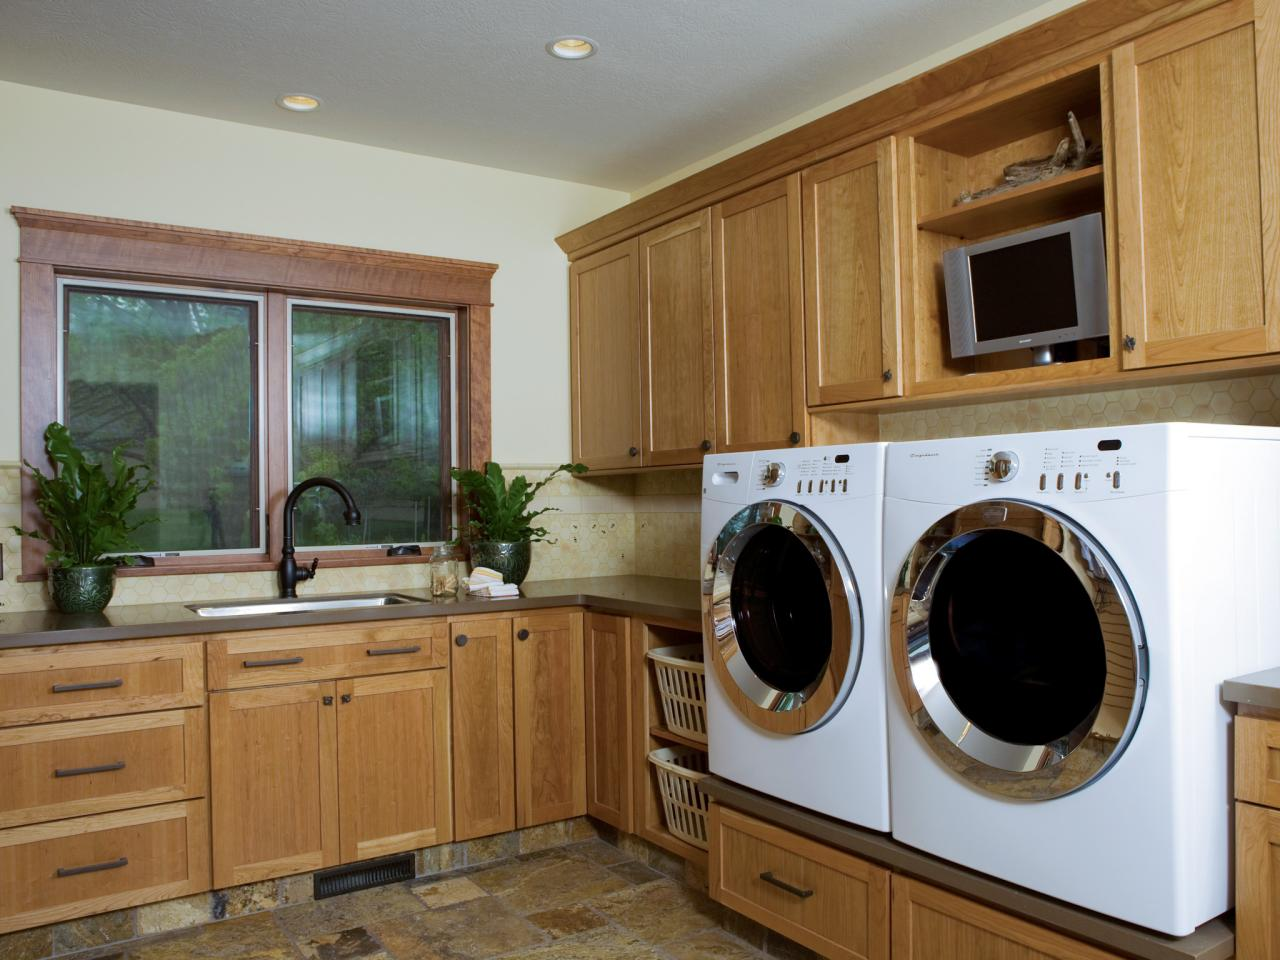 Pictures Of Laundry Rooms Things To Consider When Designing A Laundry Room